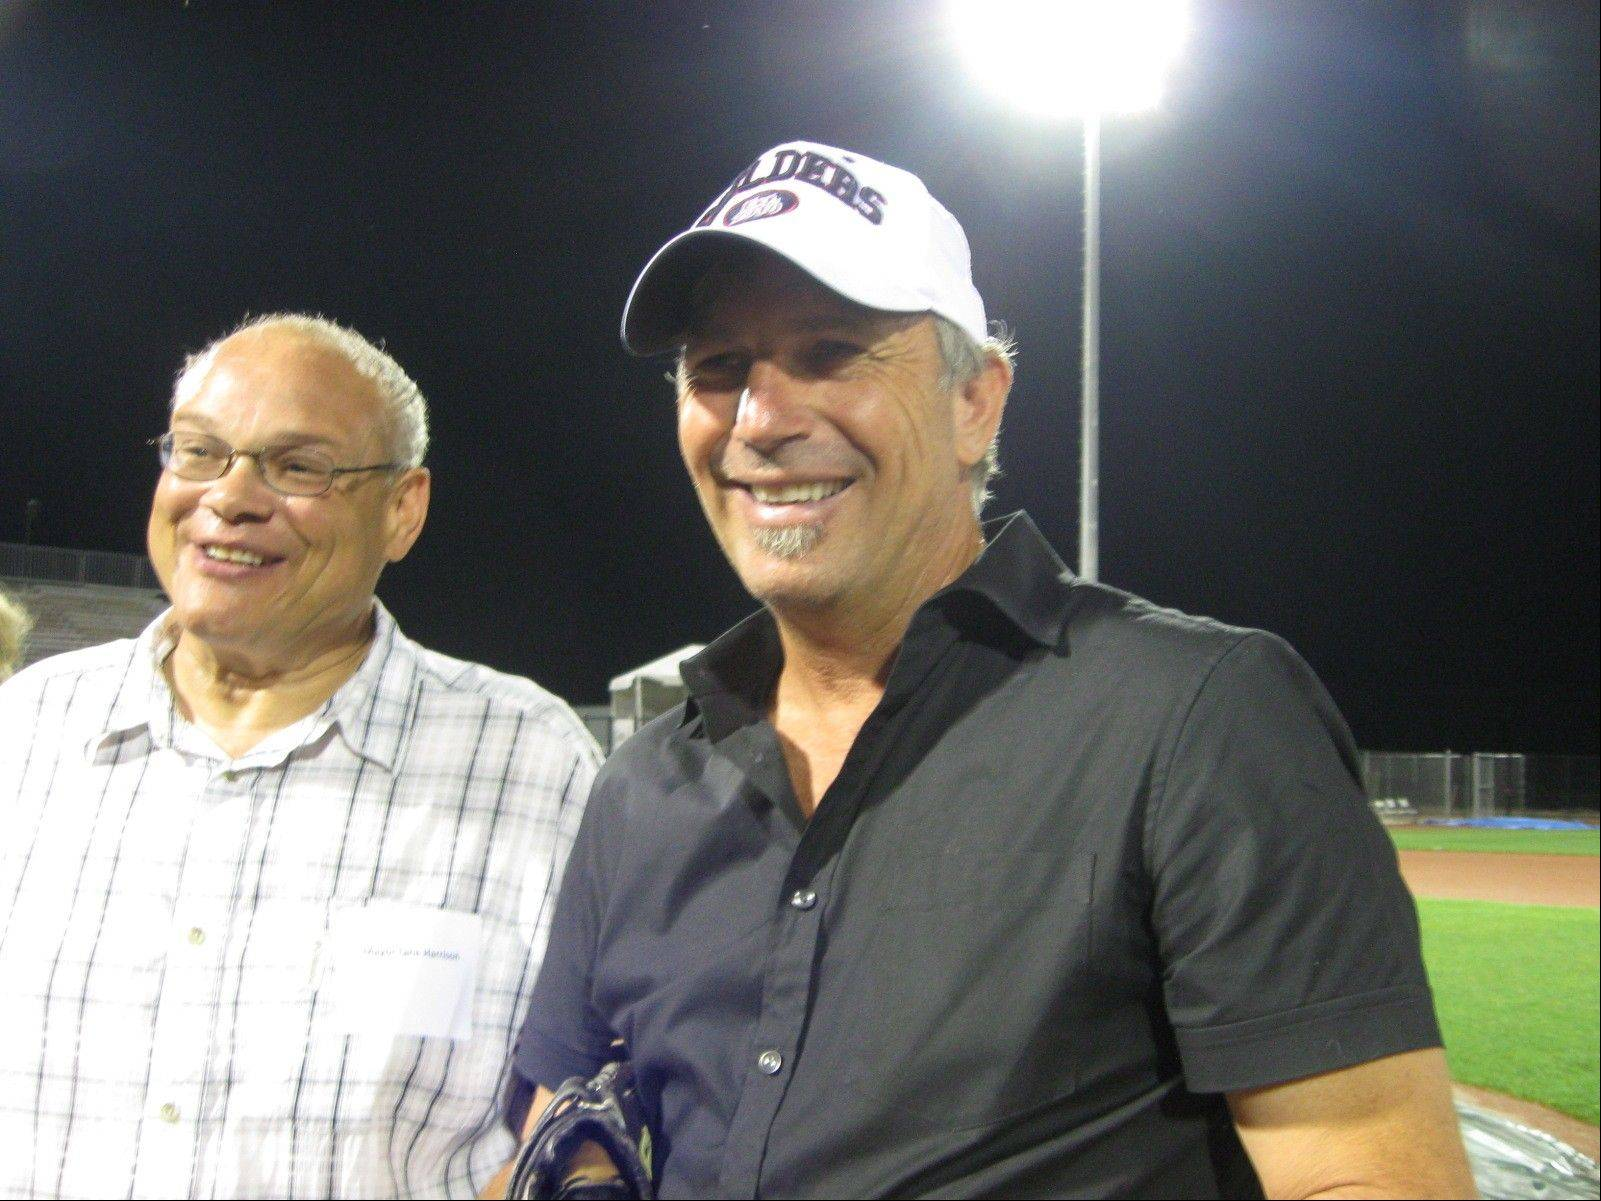 Zion Mayor Lane Harrison joined Lake County Fielders co-owner Kevin Costner when lights were turned on for the first time at a temporary baseball stadium in 2010. State taxpayers covered the lights and other improvements at the now-dormant site in Zion through a $1.3 million grant.